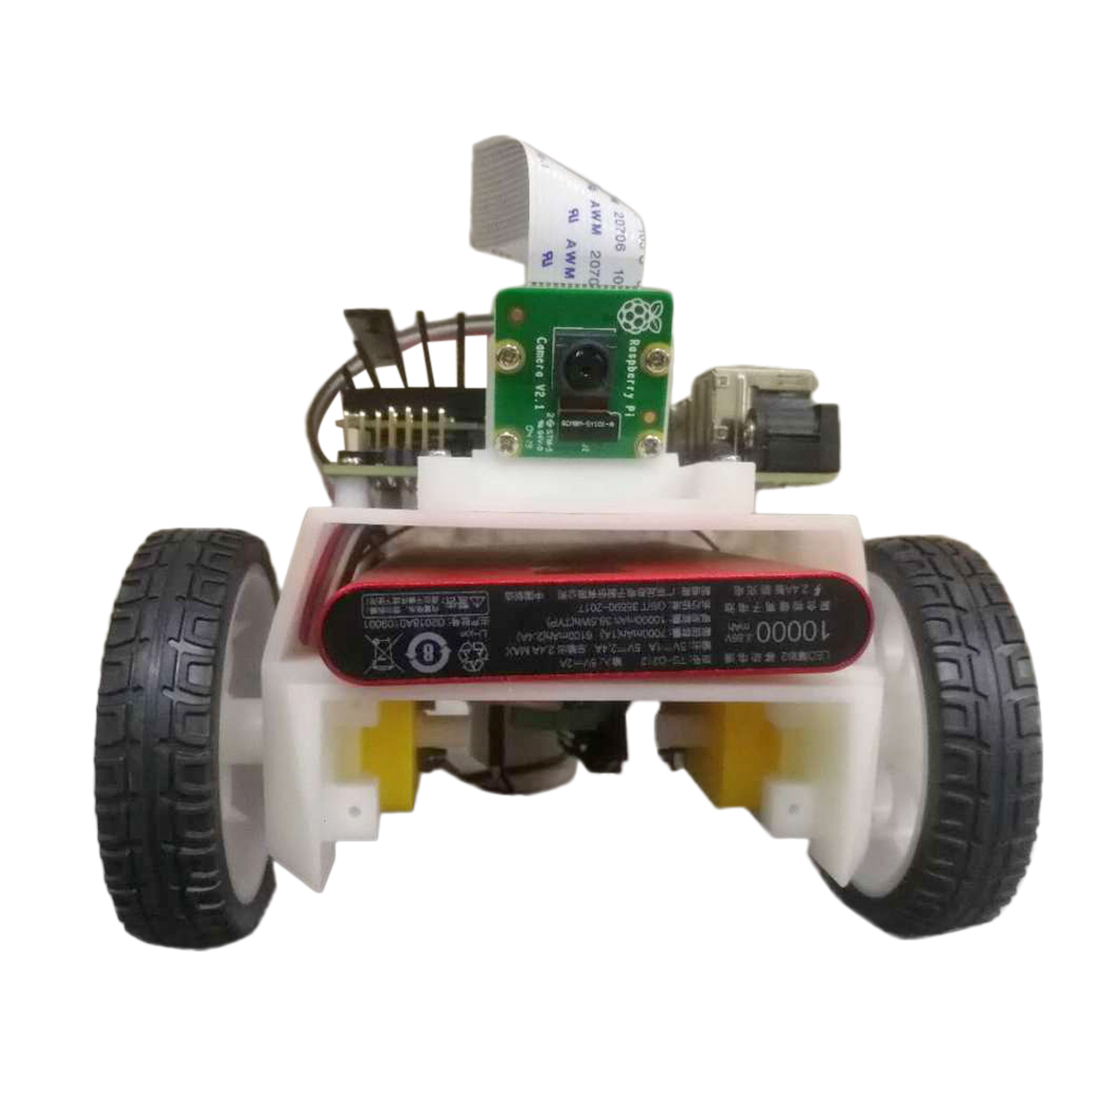 Programmable Automatic Drive Robot Car Kit Educational Learning Kit For Children Kids Developmental Early Educational Toys Gift